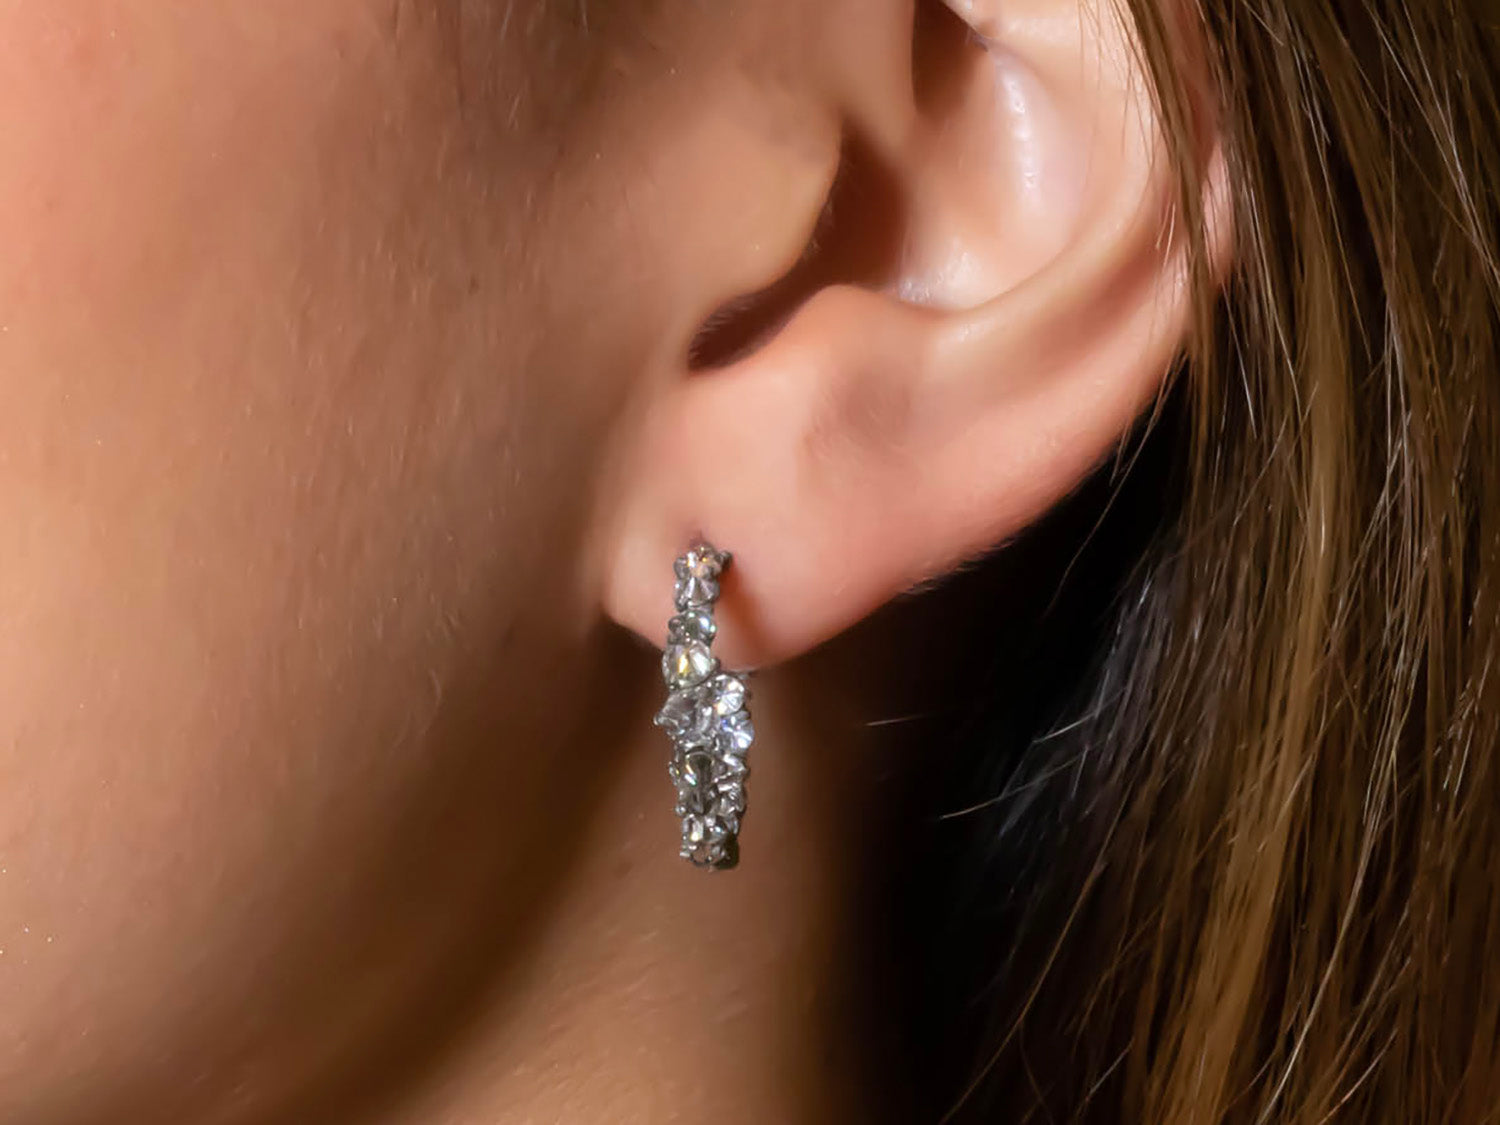 Oxidized 14K White Gold, 18K Yellow Gold and Inverted Diamond Hoop Earrings